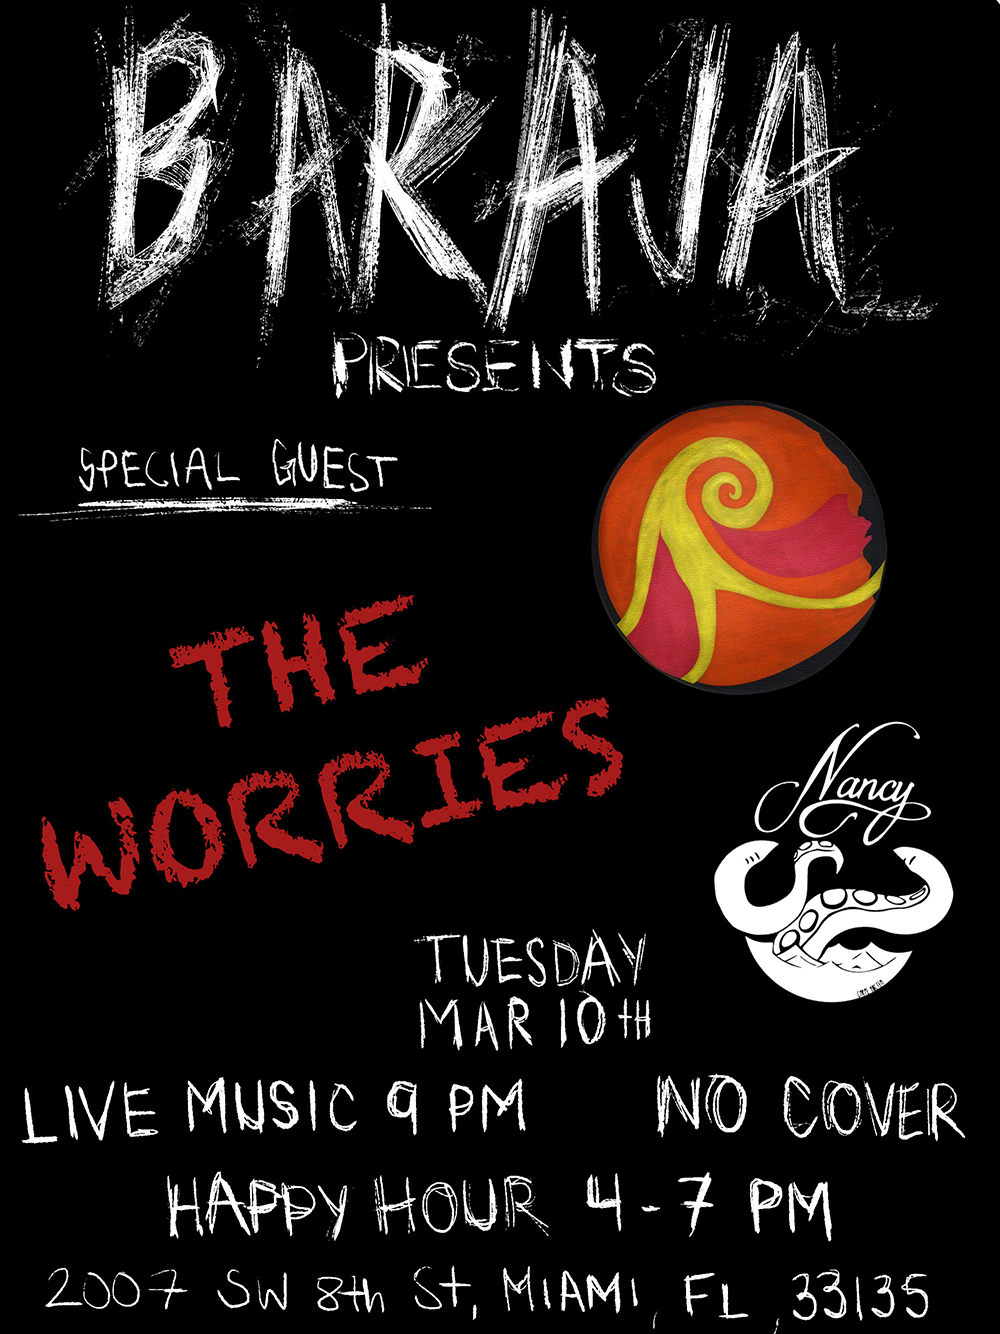 Baraja Presents Tuesdays! With Special Guests | The Worries!